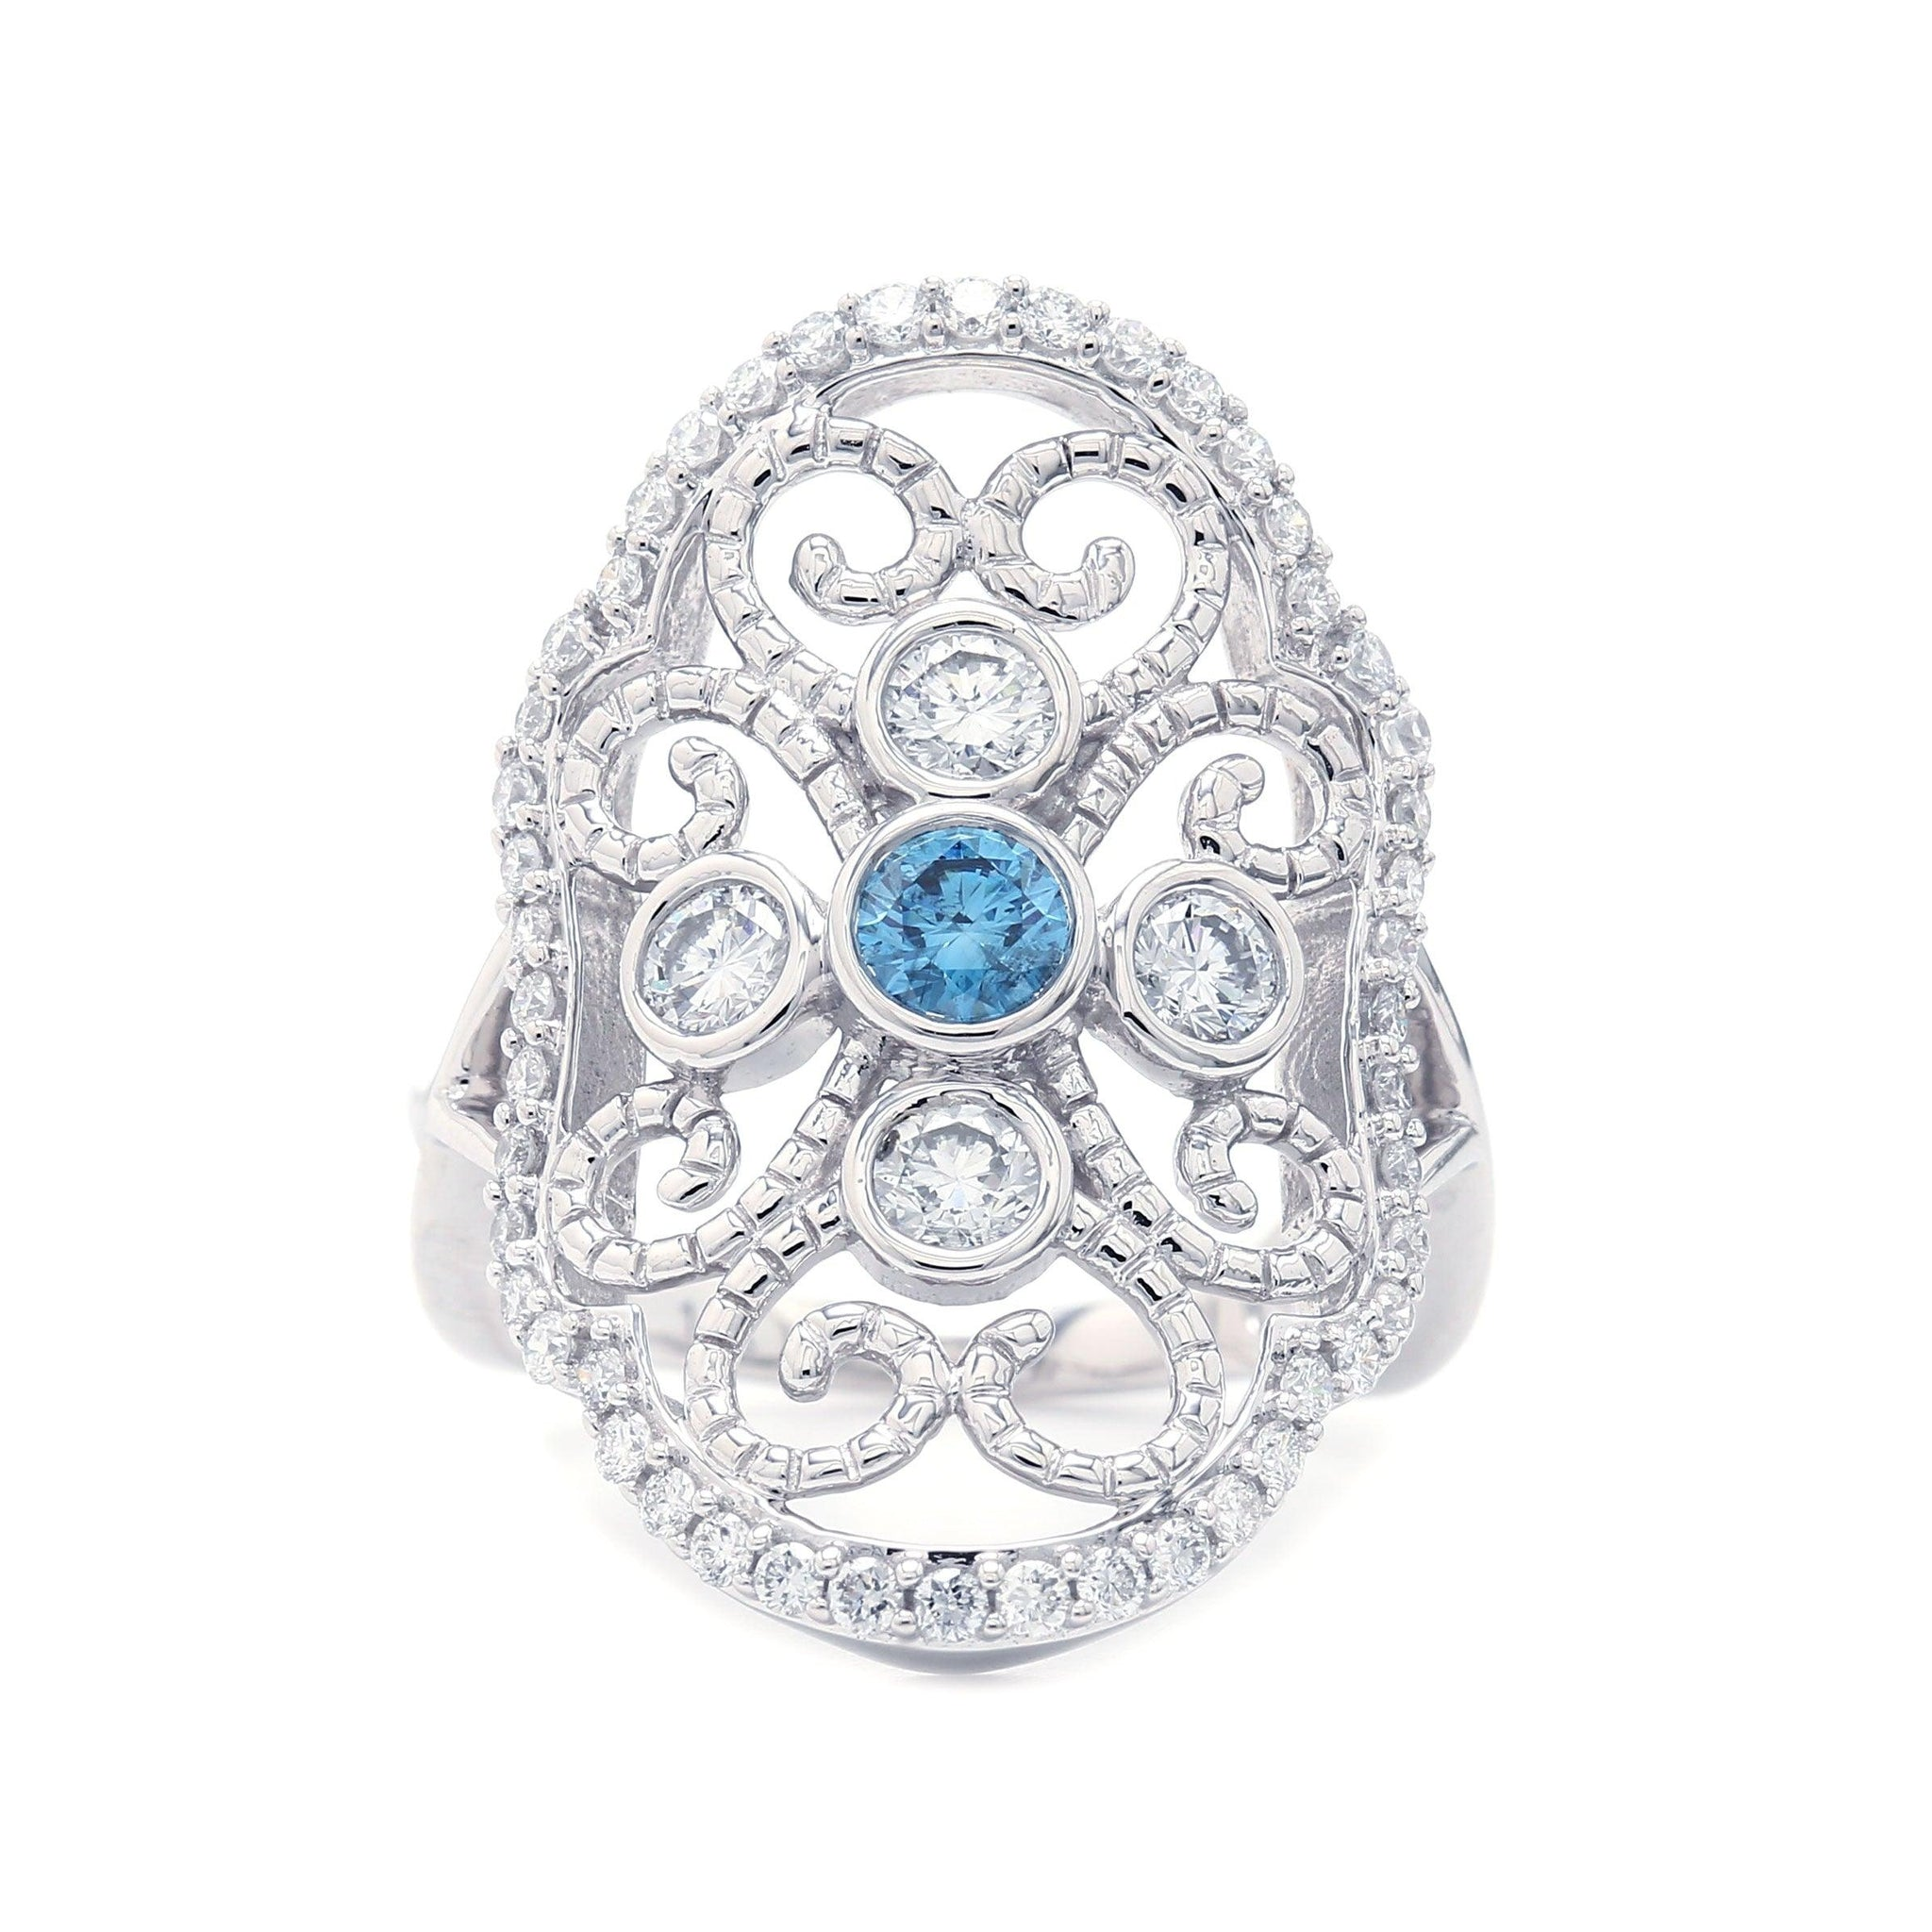 1 1/4 Ct. T.W. Royal Blue and White Lab-Grown Diamond Vintage Ring 14K White Gold